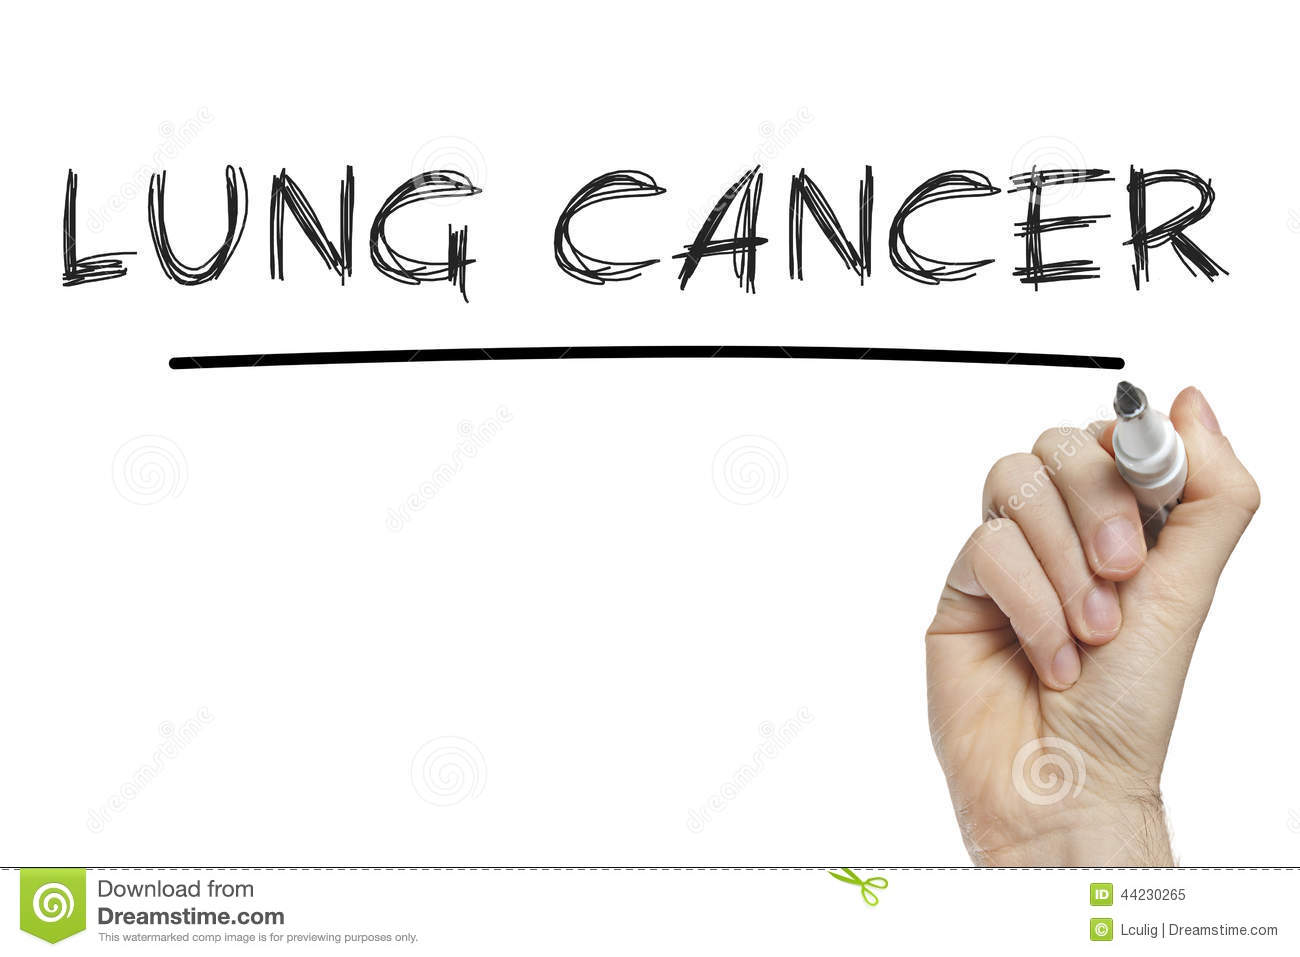 essay of lung cancer Lung cancer essay - custom assignment writing and editing company - we help students to get non-plagiarized essays, term papers, reports and.